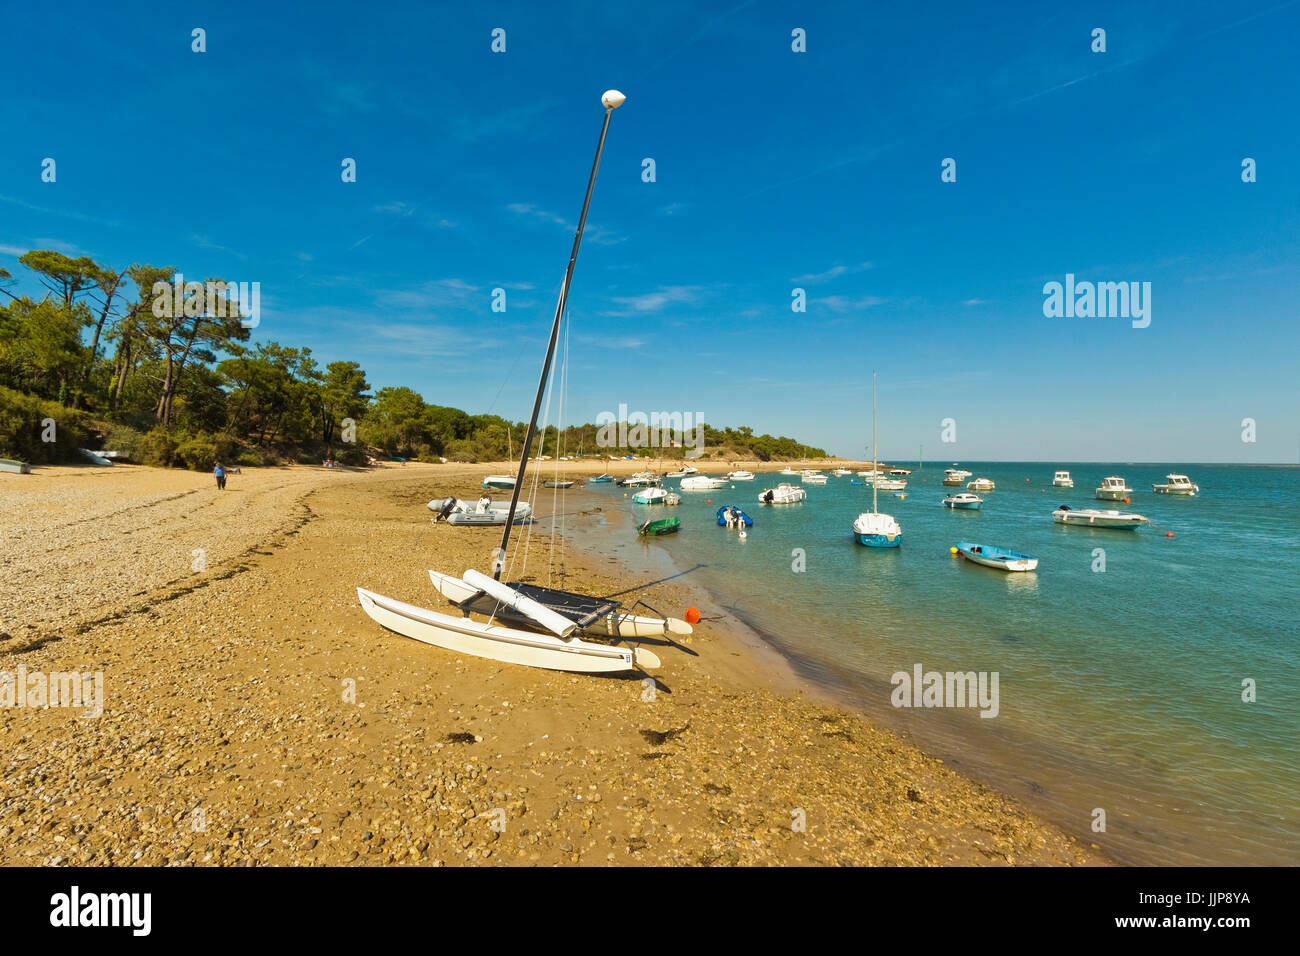 Boats moored in the entrance to Fier d'Ars by the beach at La Patache. Les Portes-en-Ré; Ile de Ré; - Stock Image